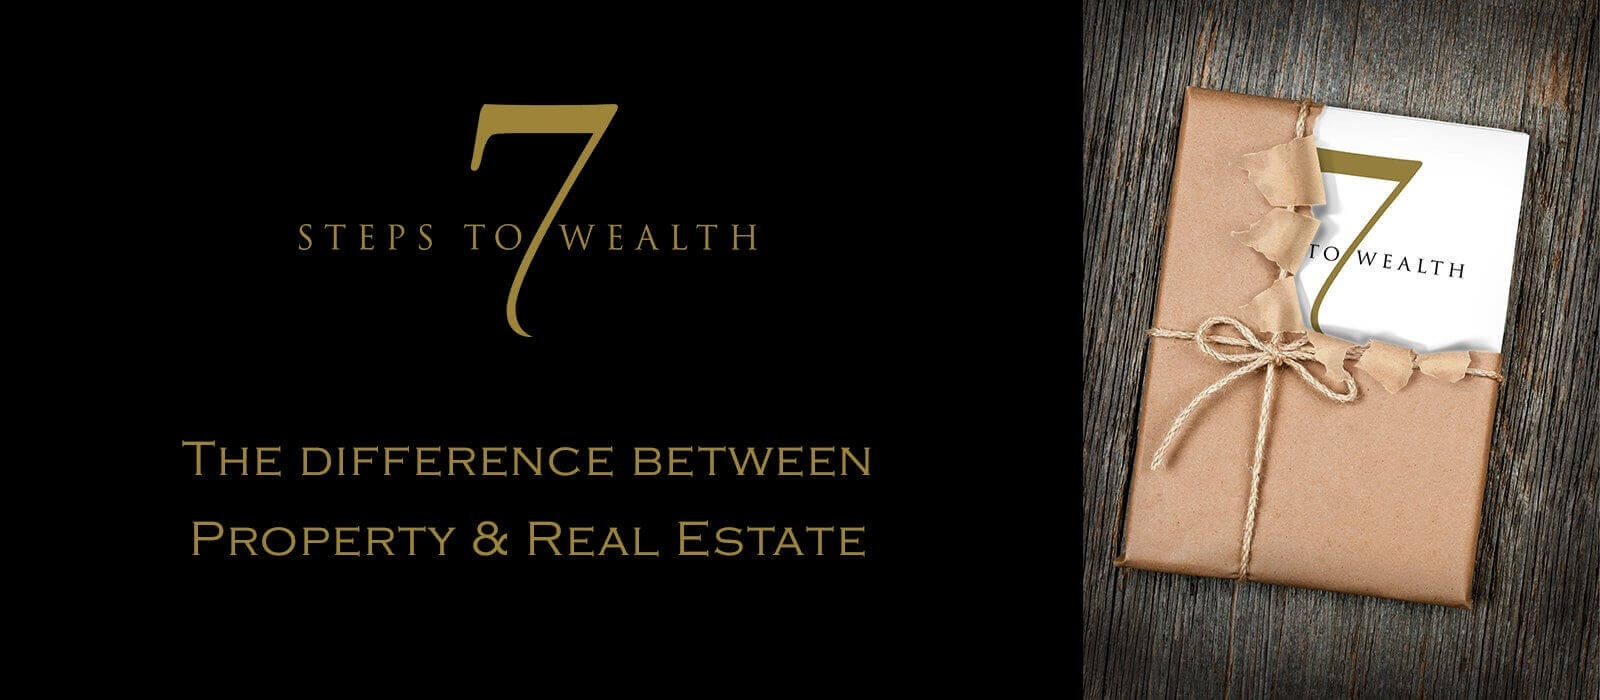 7 Steps To Wealth Book and a quote says the difference between property & real estate